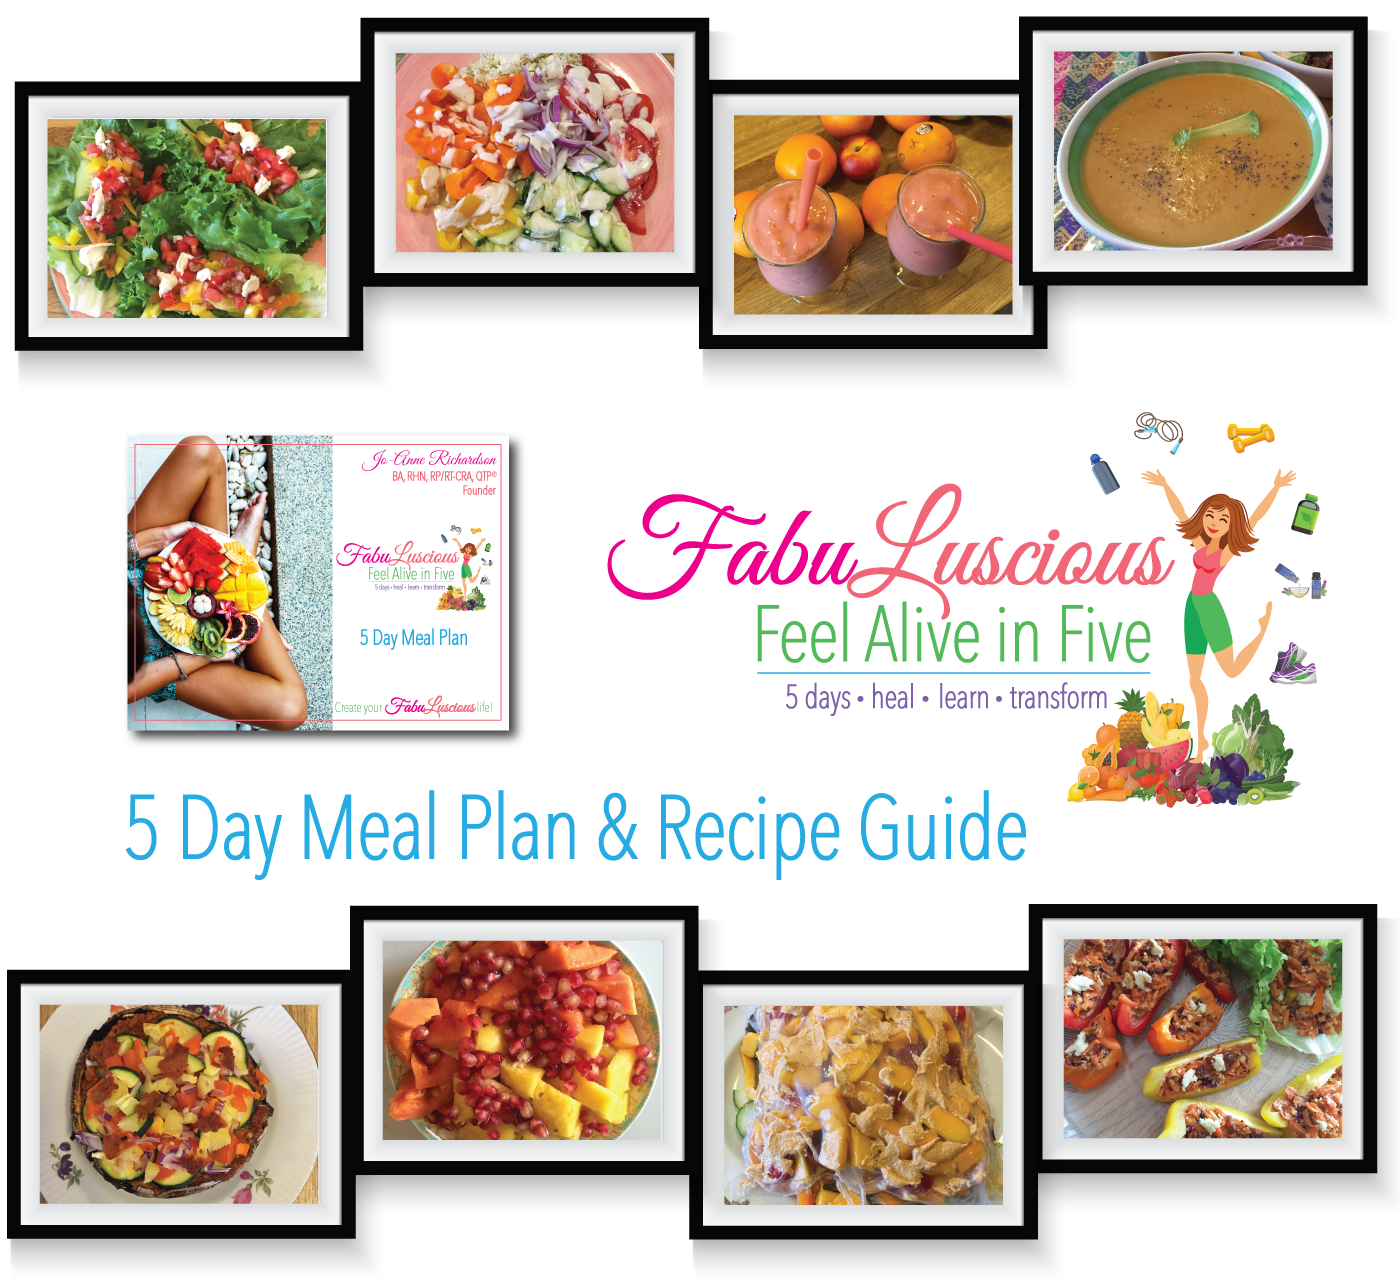 Feel Alive in Five Recipe Guide